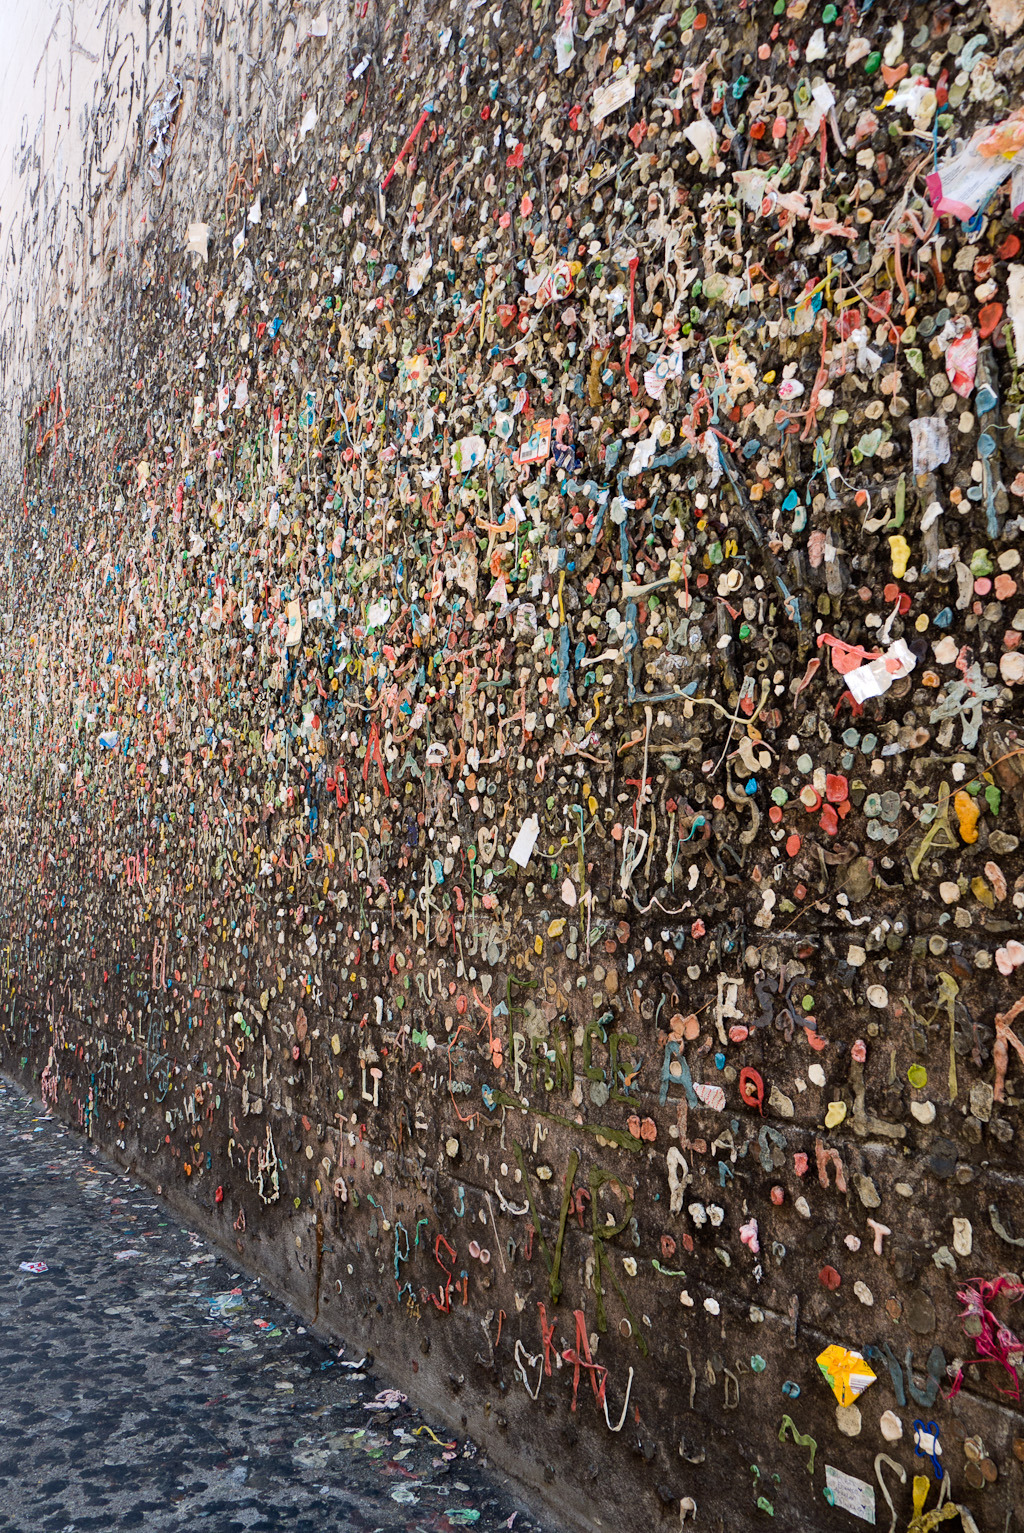 terrysdiary:  Bubblegum Alley in San Luis Obisbo.  Gosh darn Terry Richardson in my hometown and I didn't even know it.